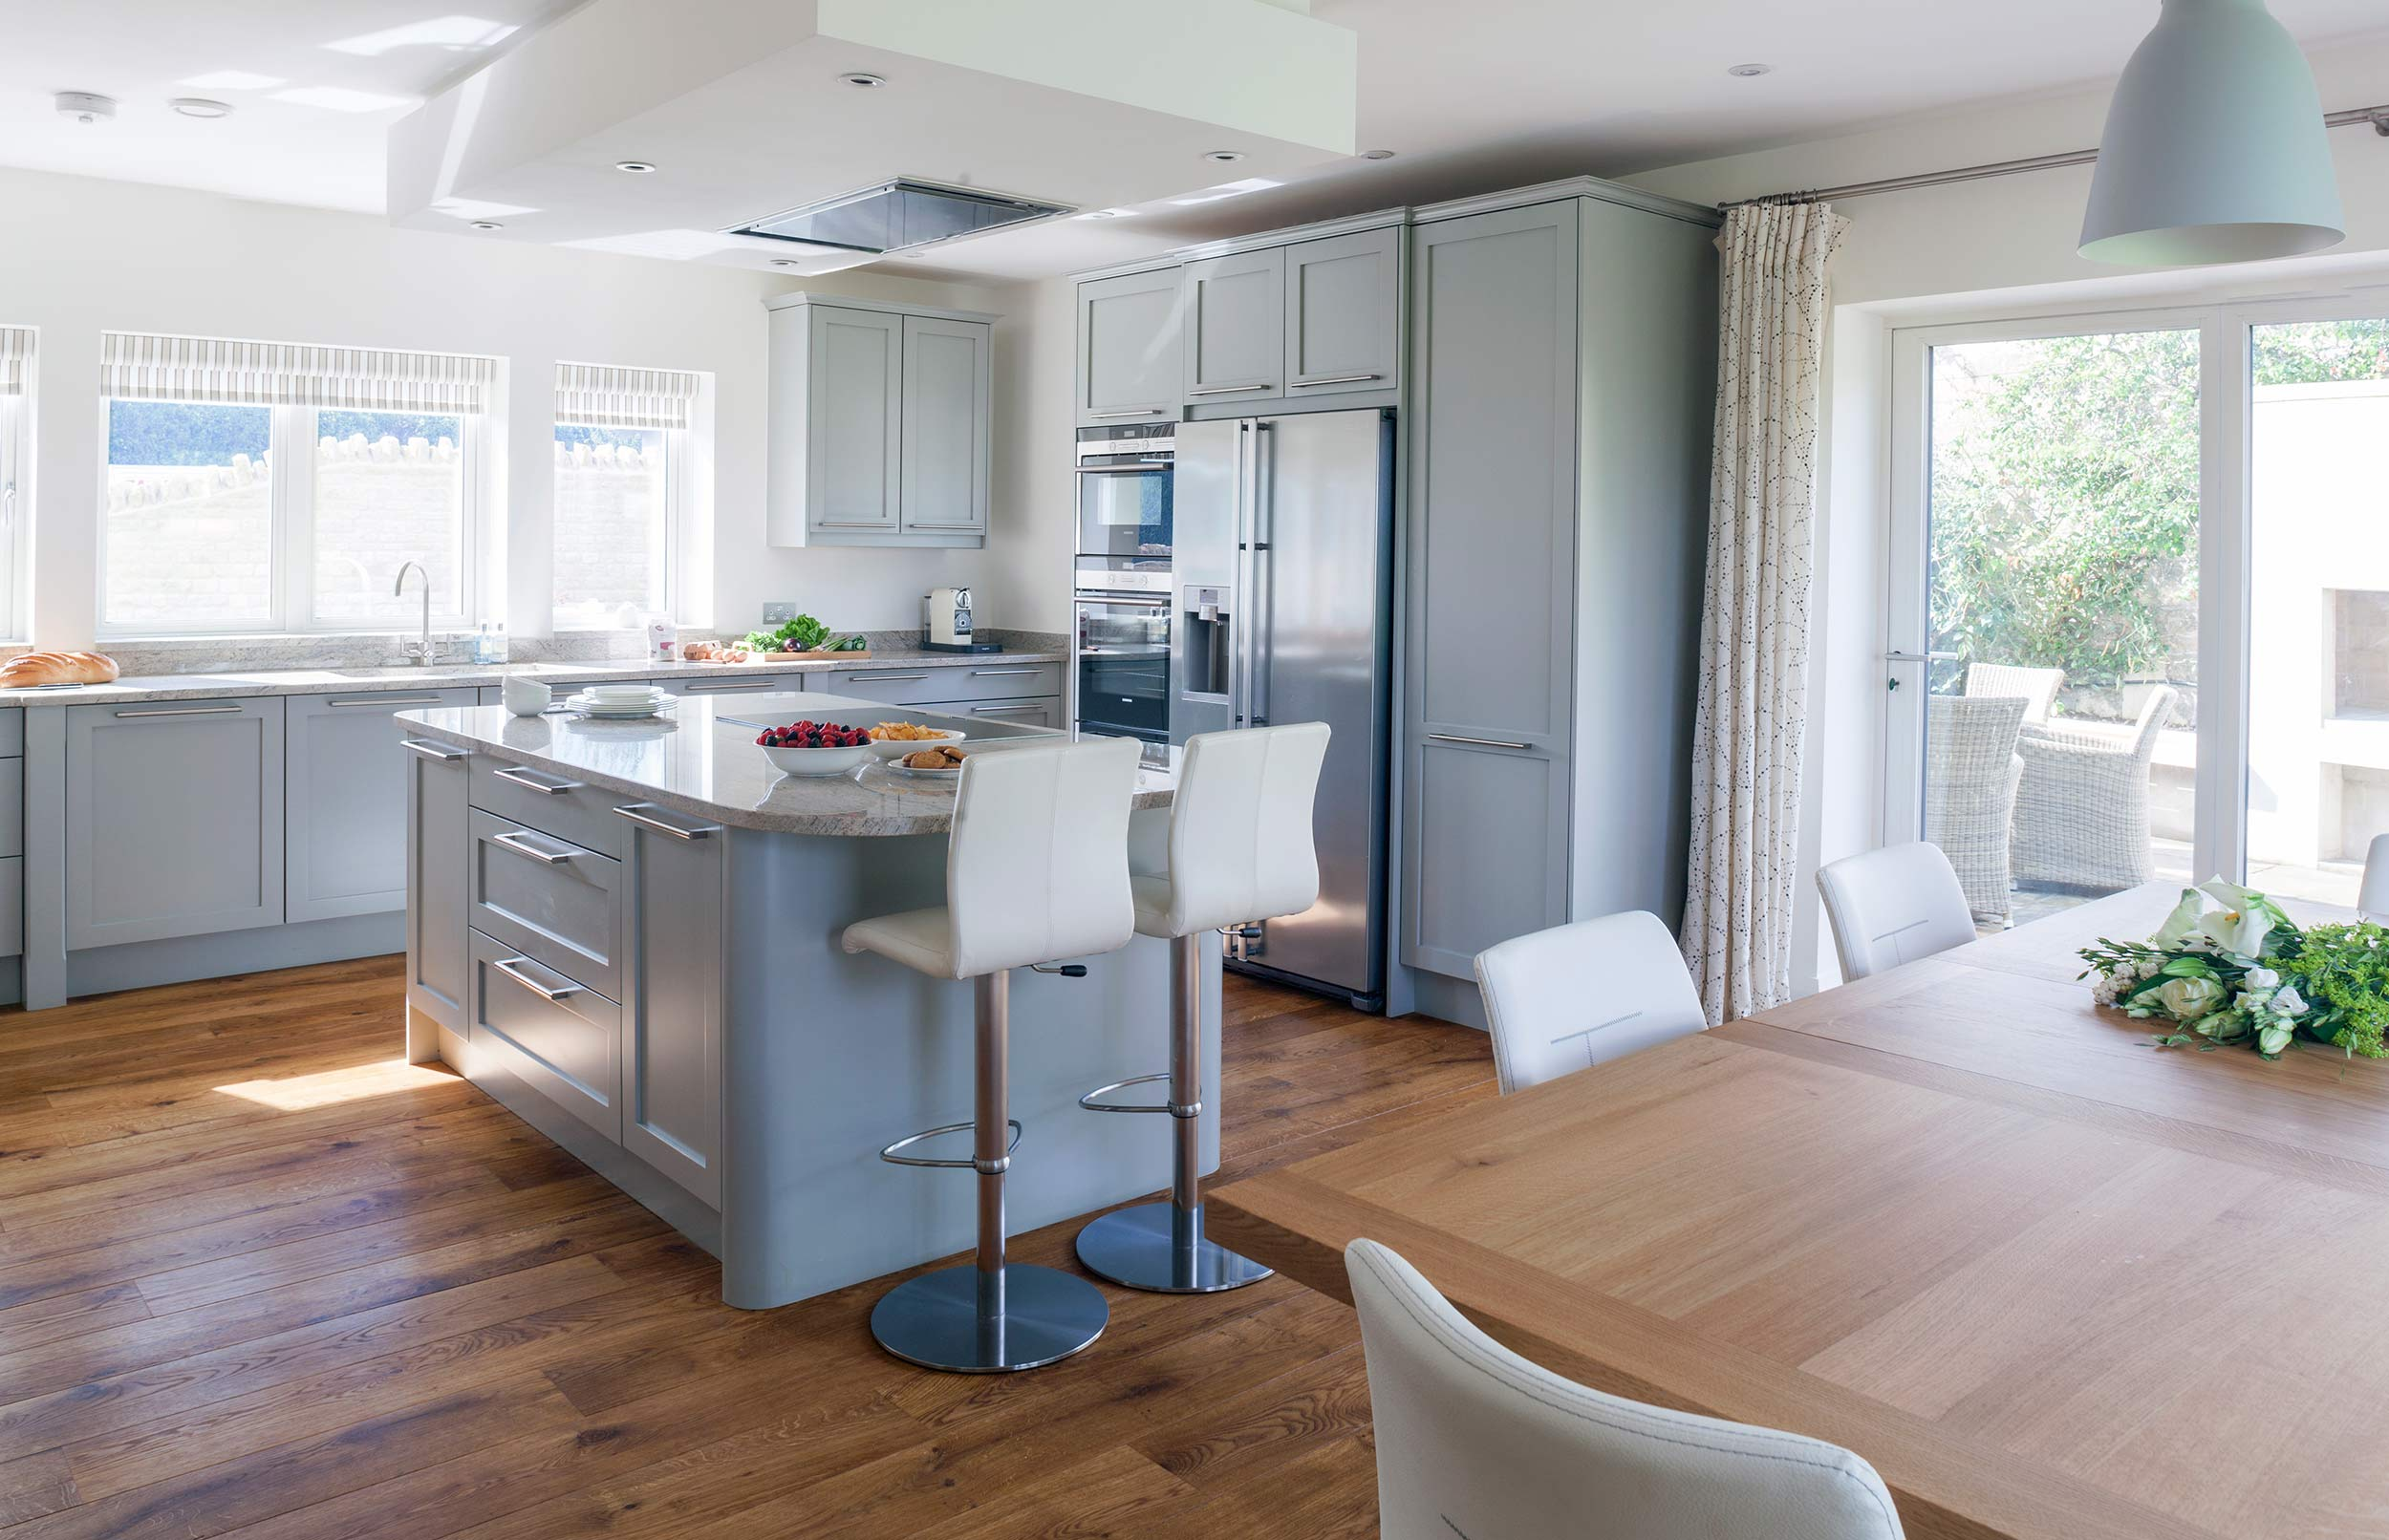 Elegant bespoke kitchen with oak Flooring & Island